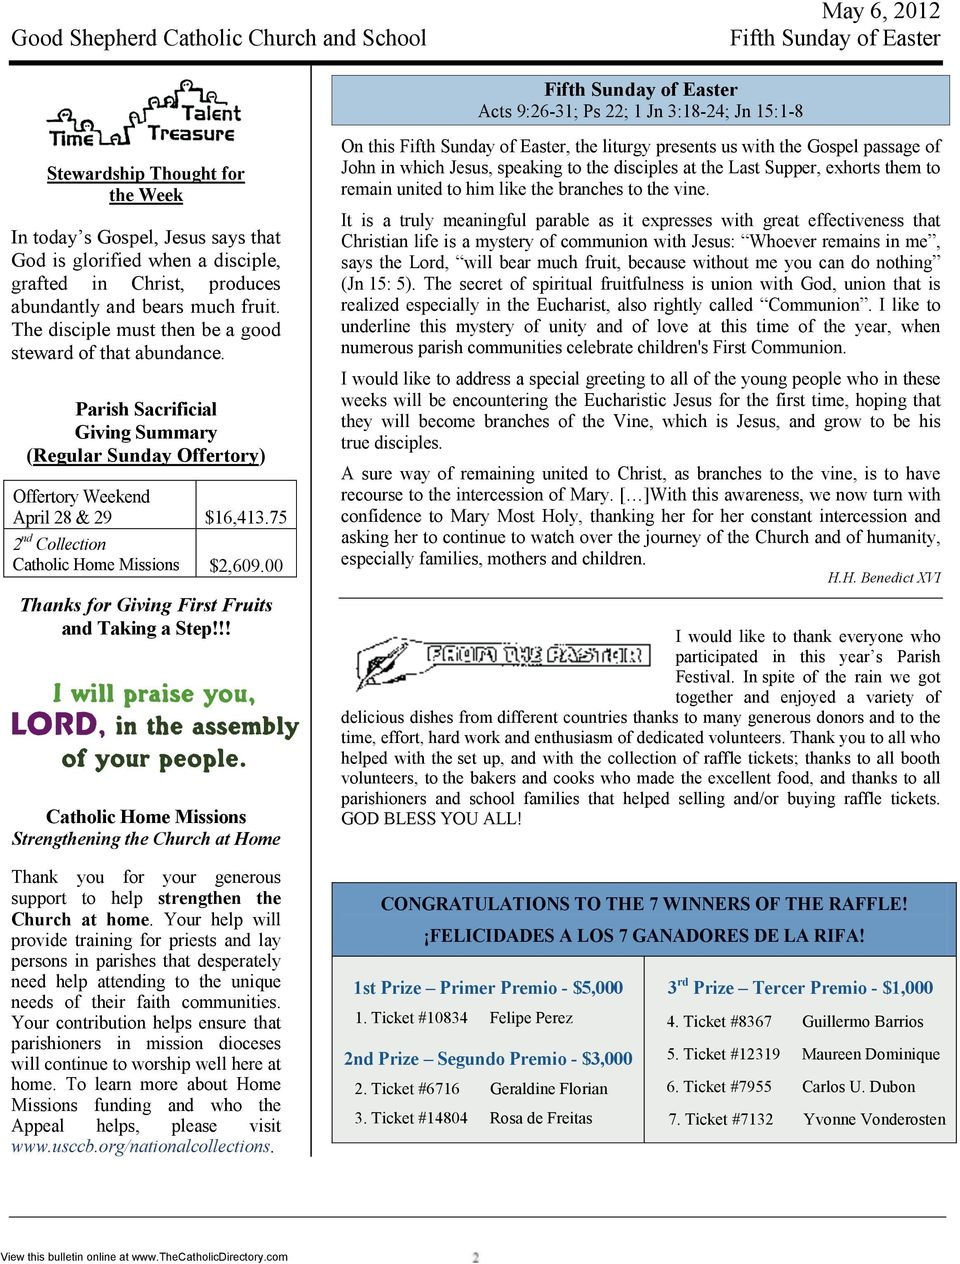 Parish Sacrificial Giving Summary (Regular Sunday Offertory) Offertory Weekend April 28 & 29 $16,413.75 2 nd Collection Catholic Home Missions $2,609.